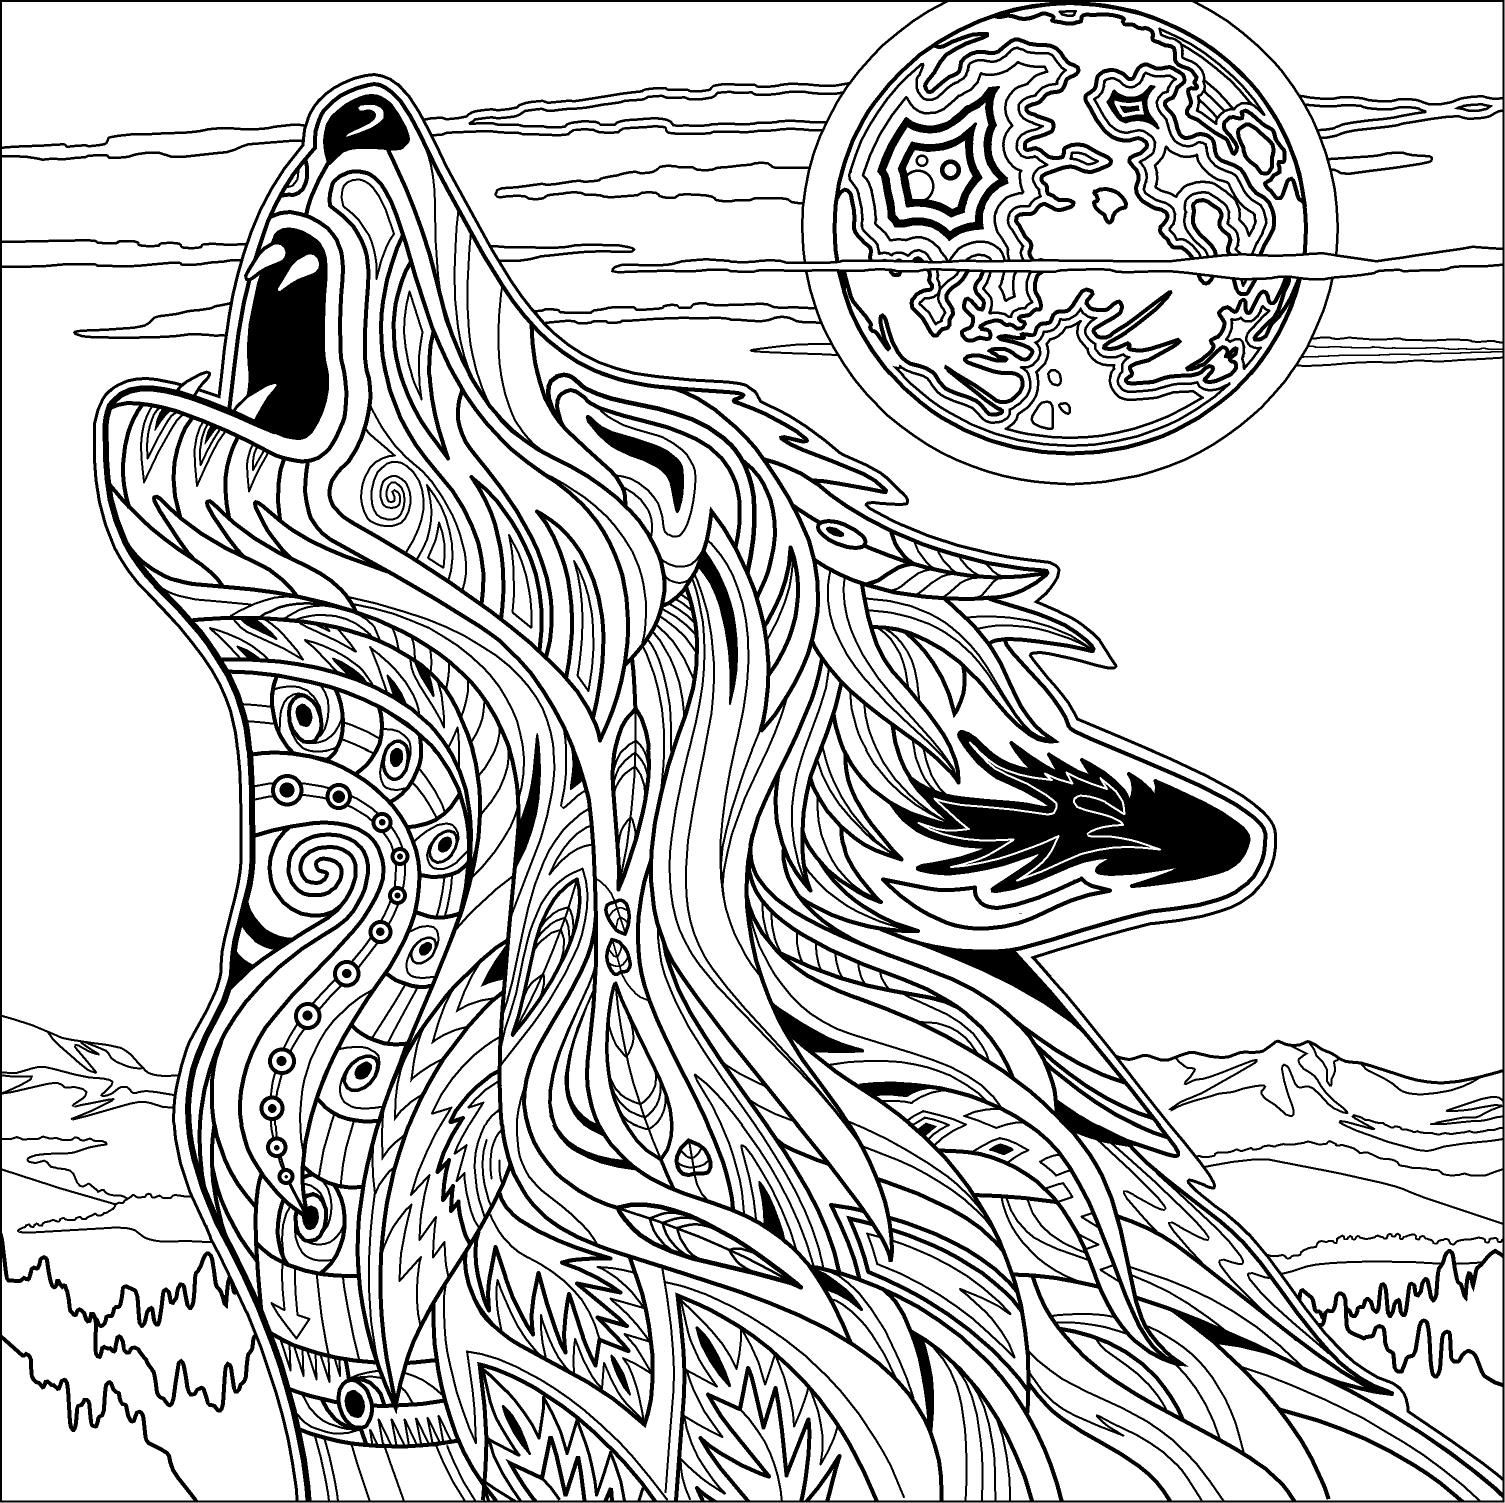 Wolf pages to color - Dave Ember Illustration Yellowstone Park Coloring Book